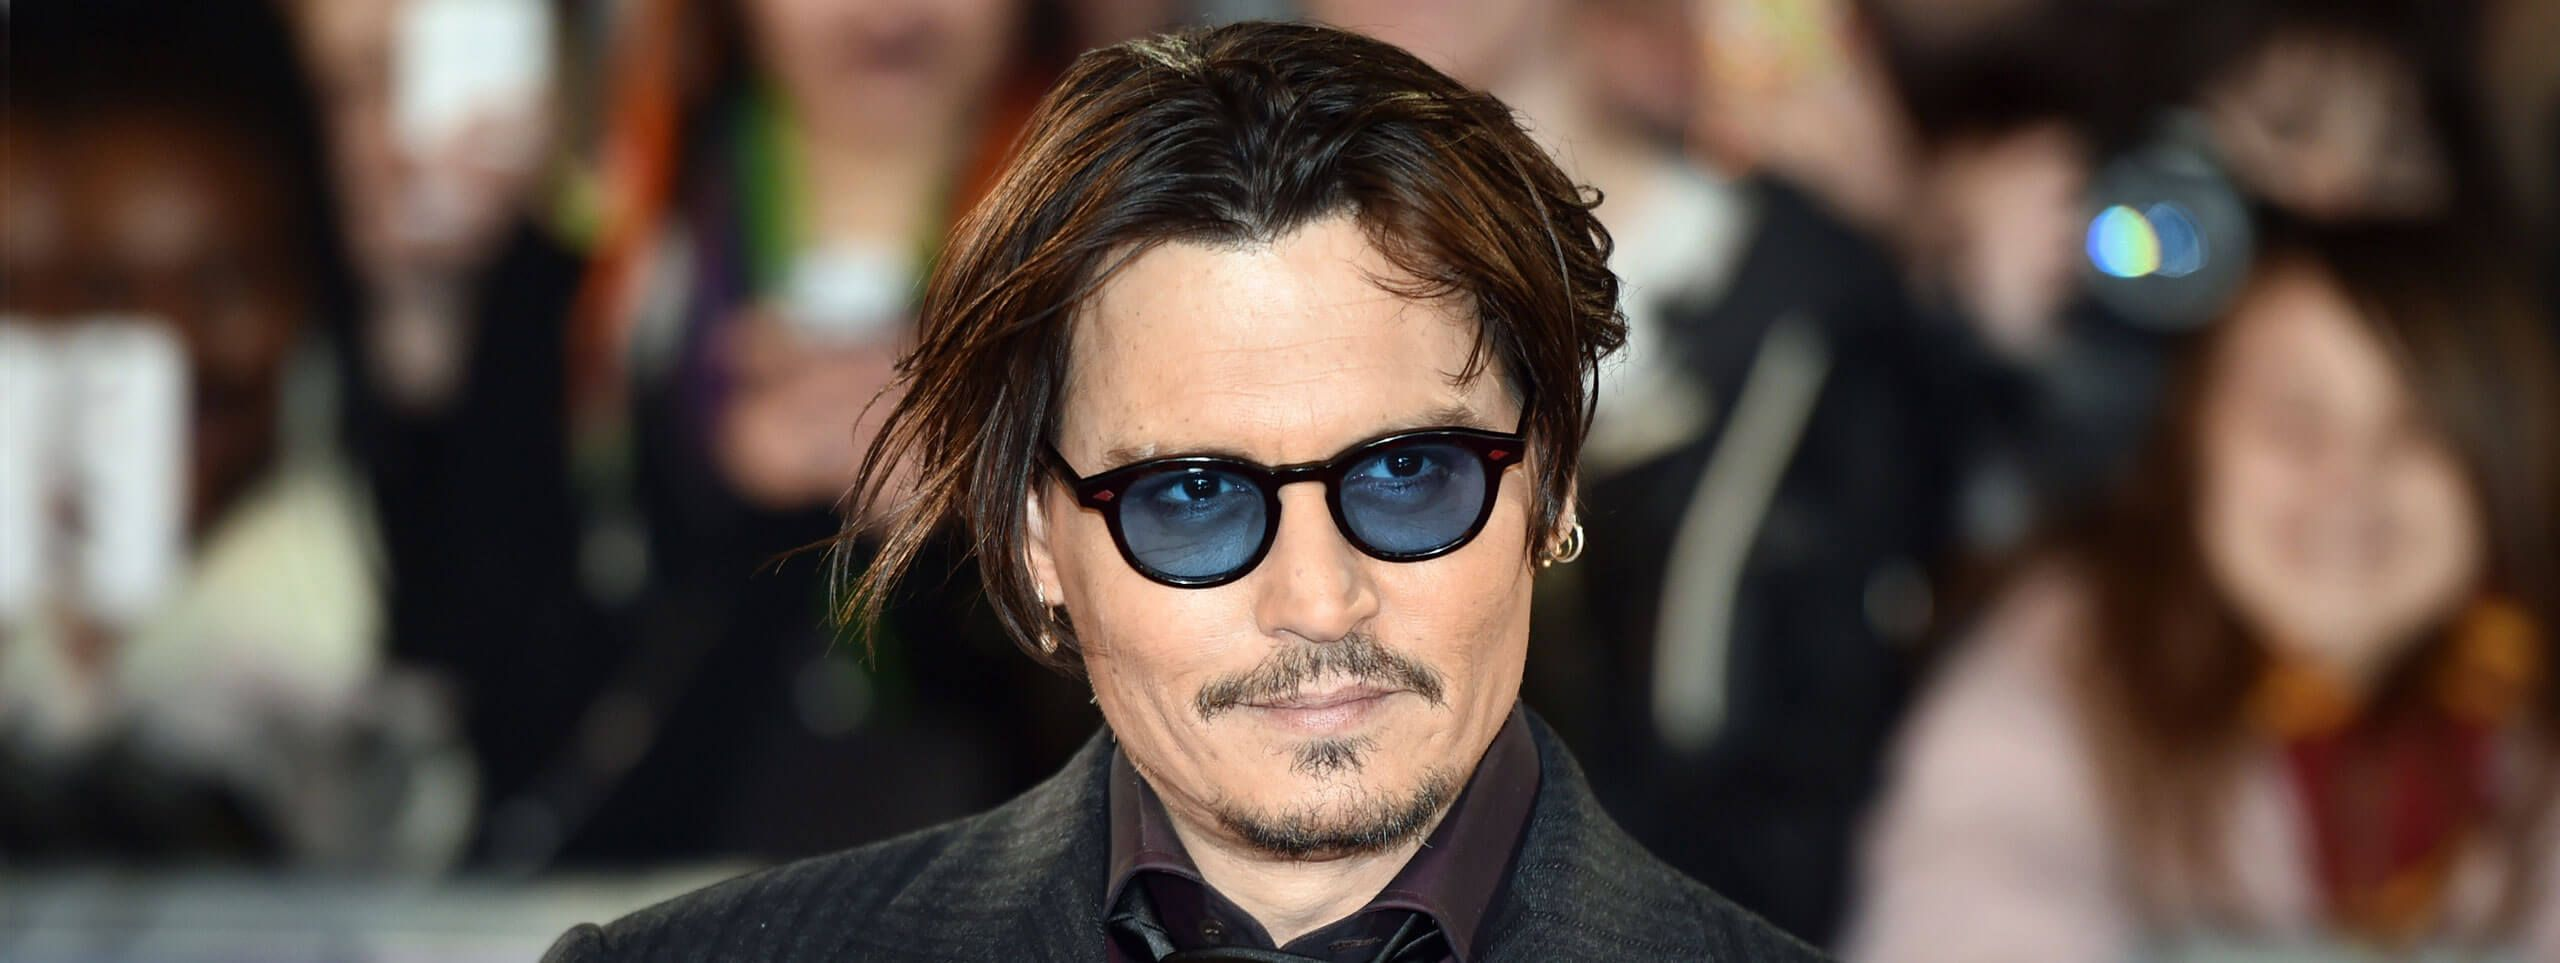 Johnny Depp cheveux mi-longs